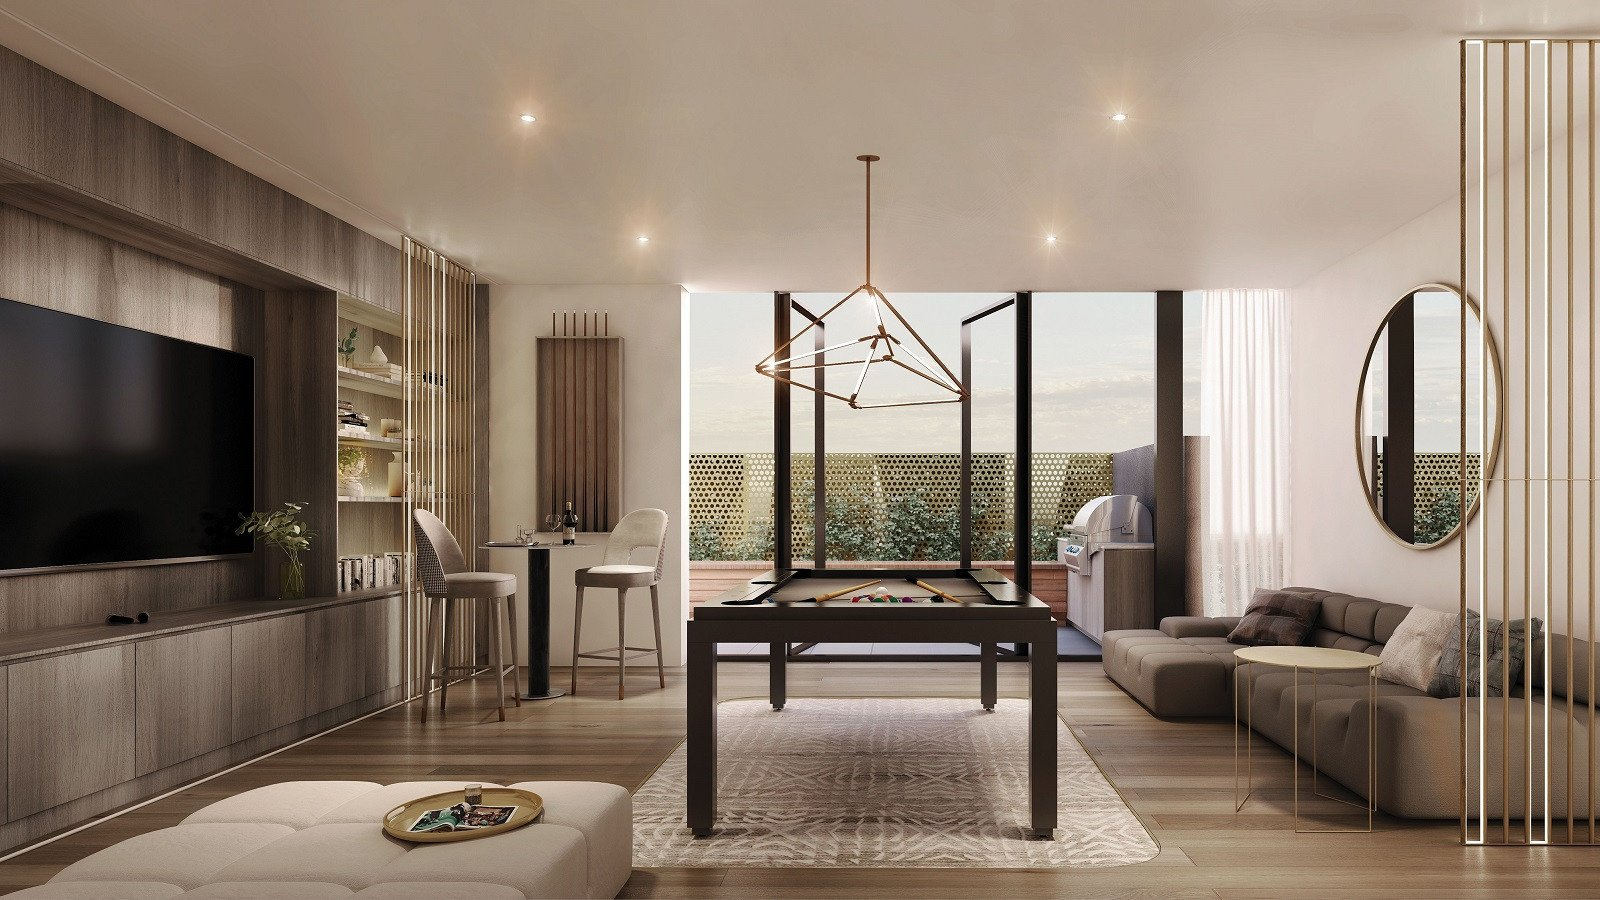 Realm Apartments-image-7